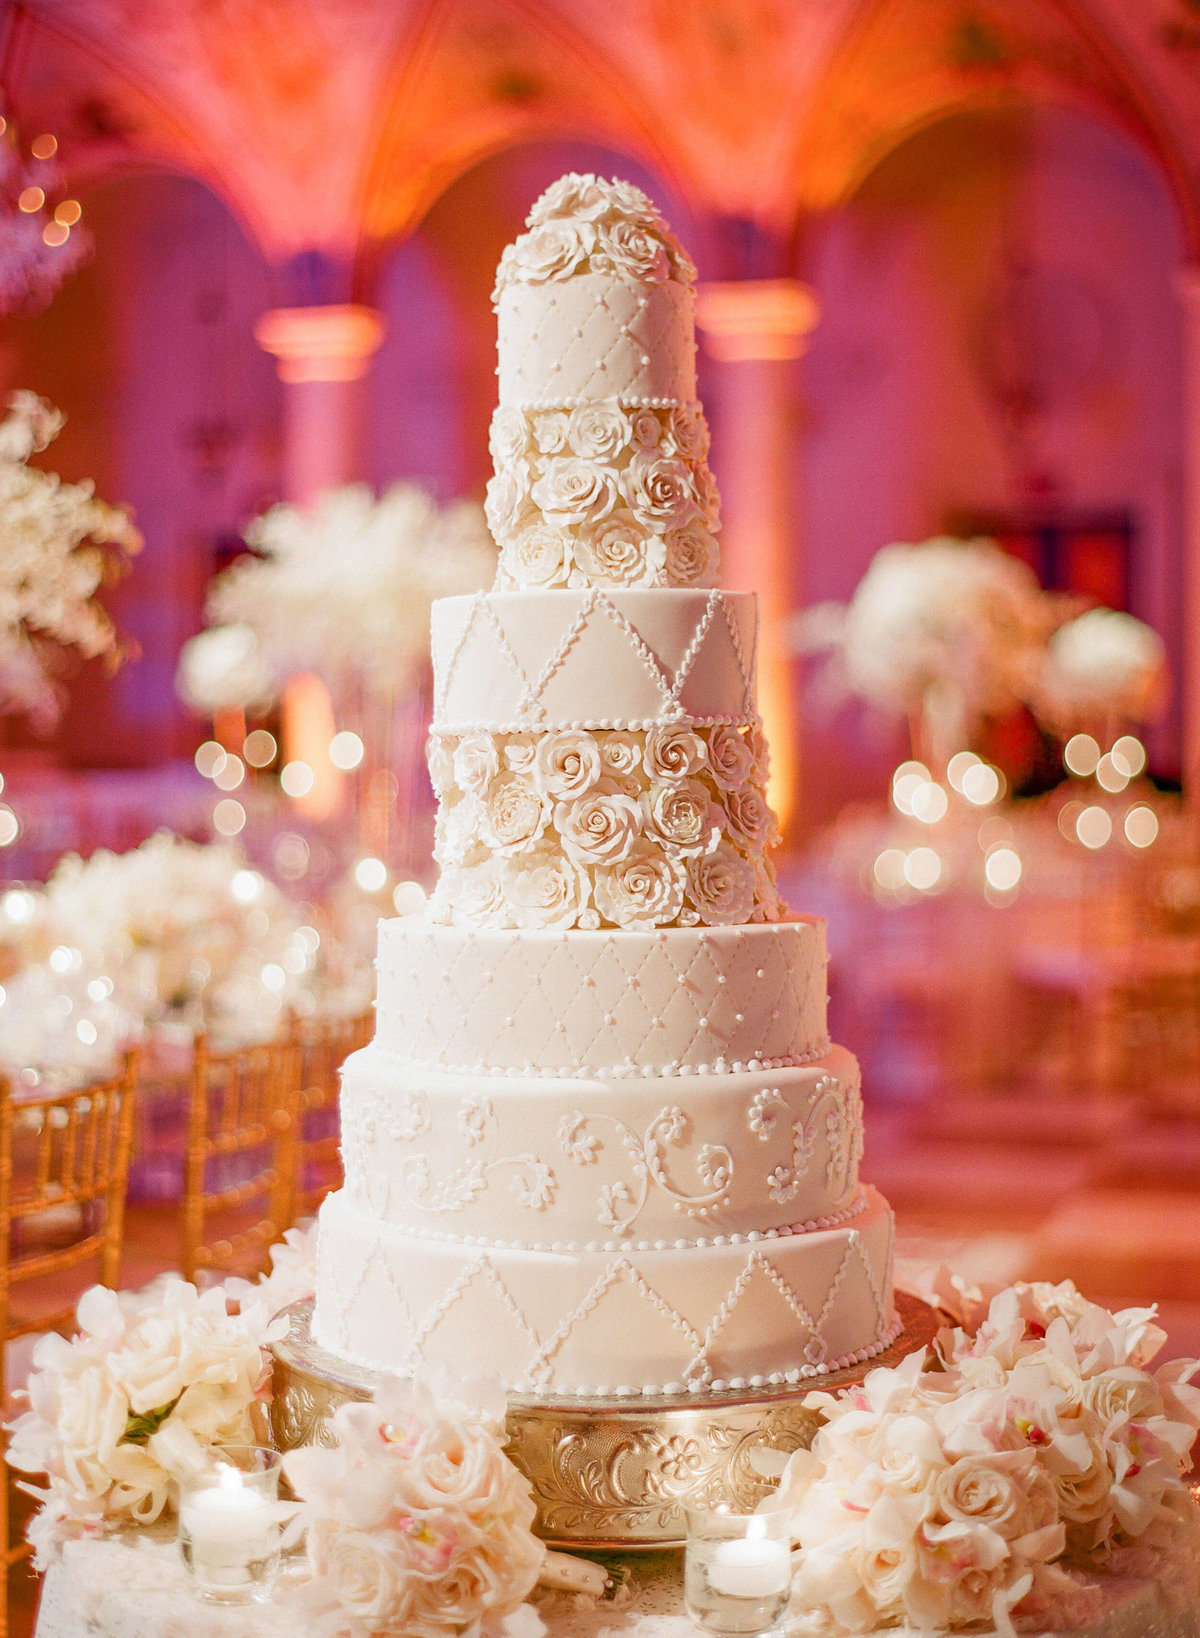 37-KTMerry-weddings-Breakers-Palm-Beach-cake-design-studio